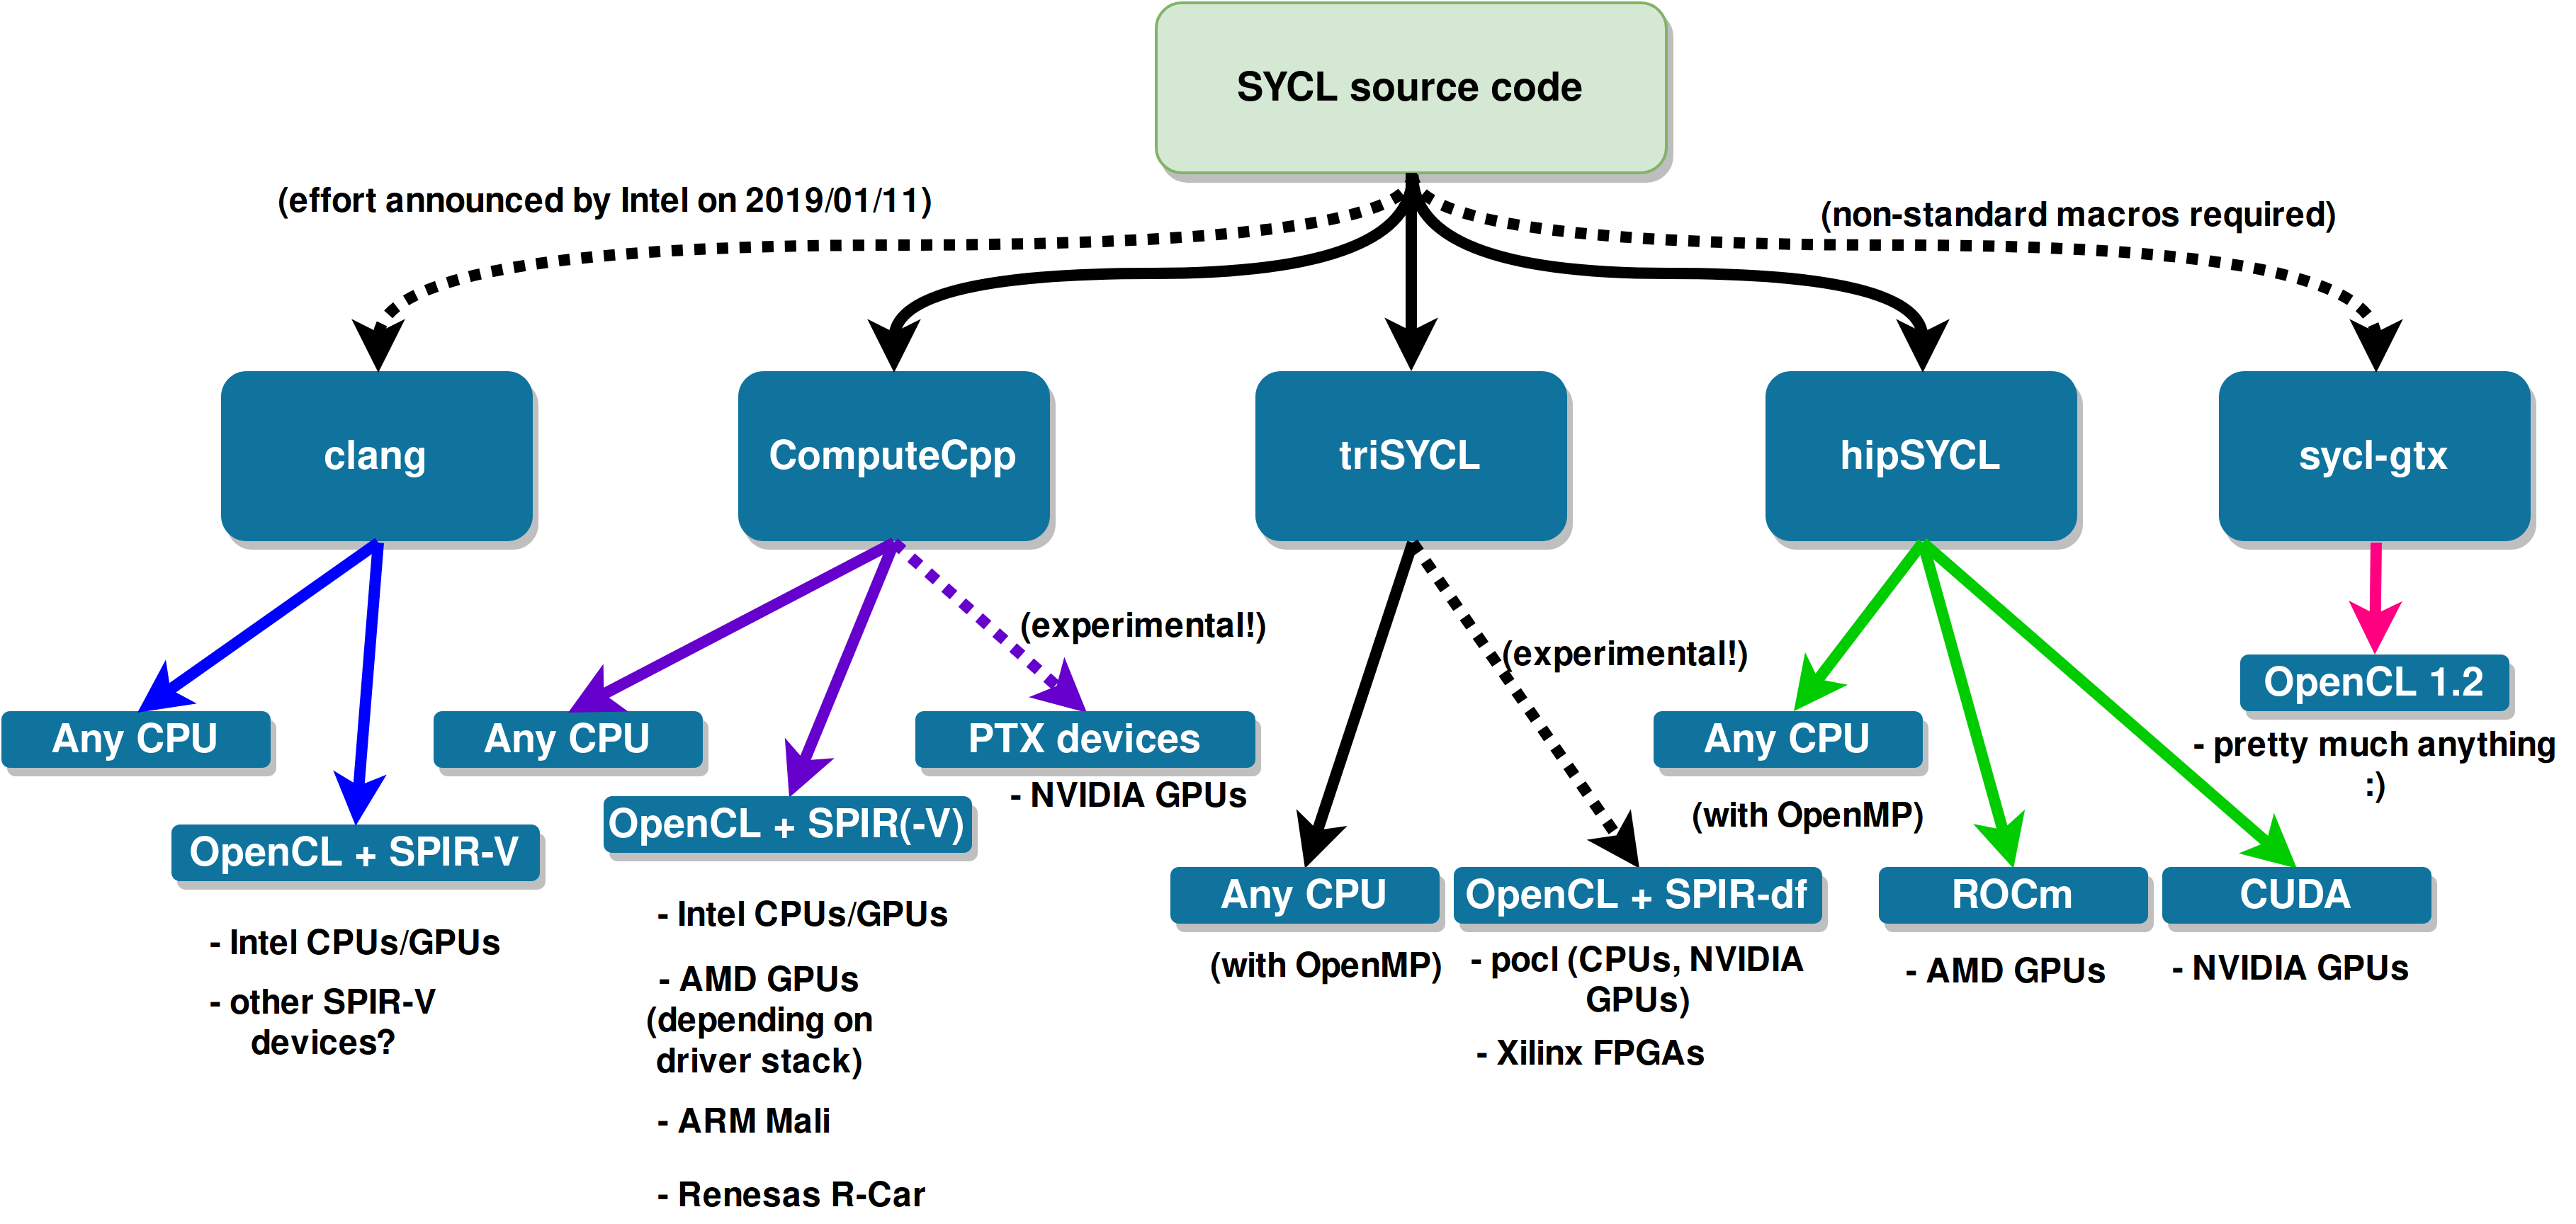 SYCL implementations diagram